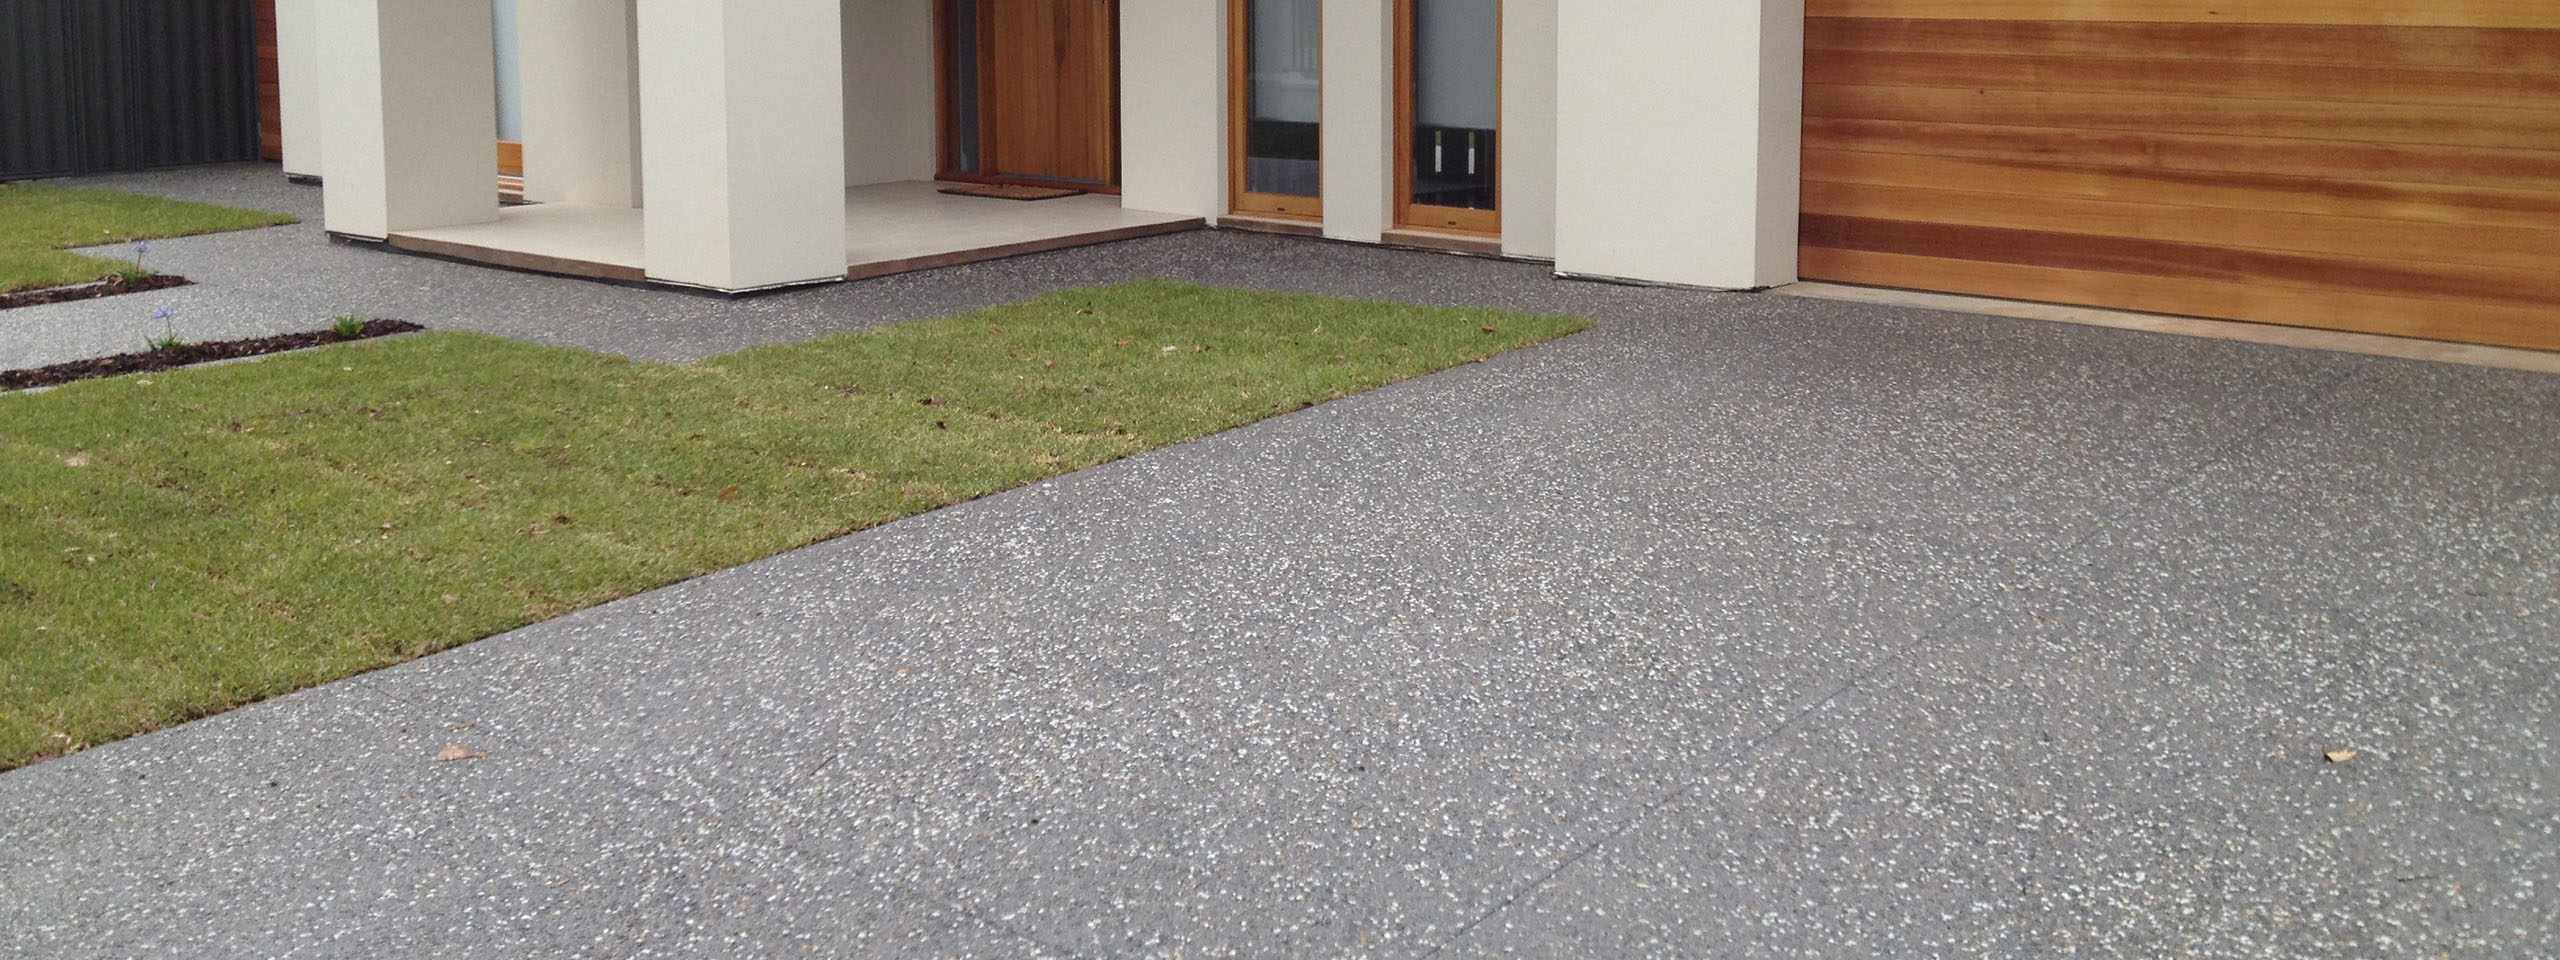 Hire experts for Concrete Cutting making the best driveways